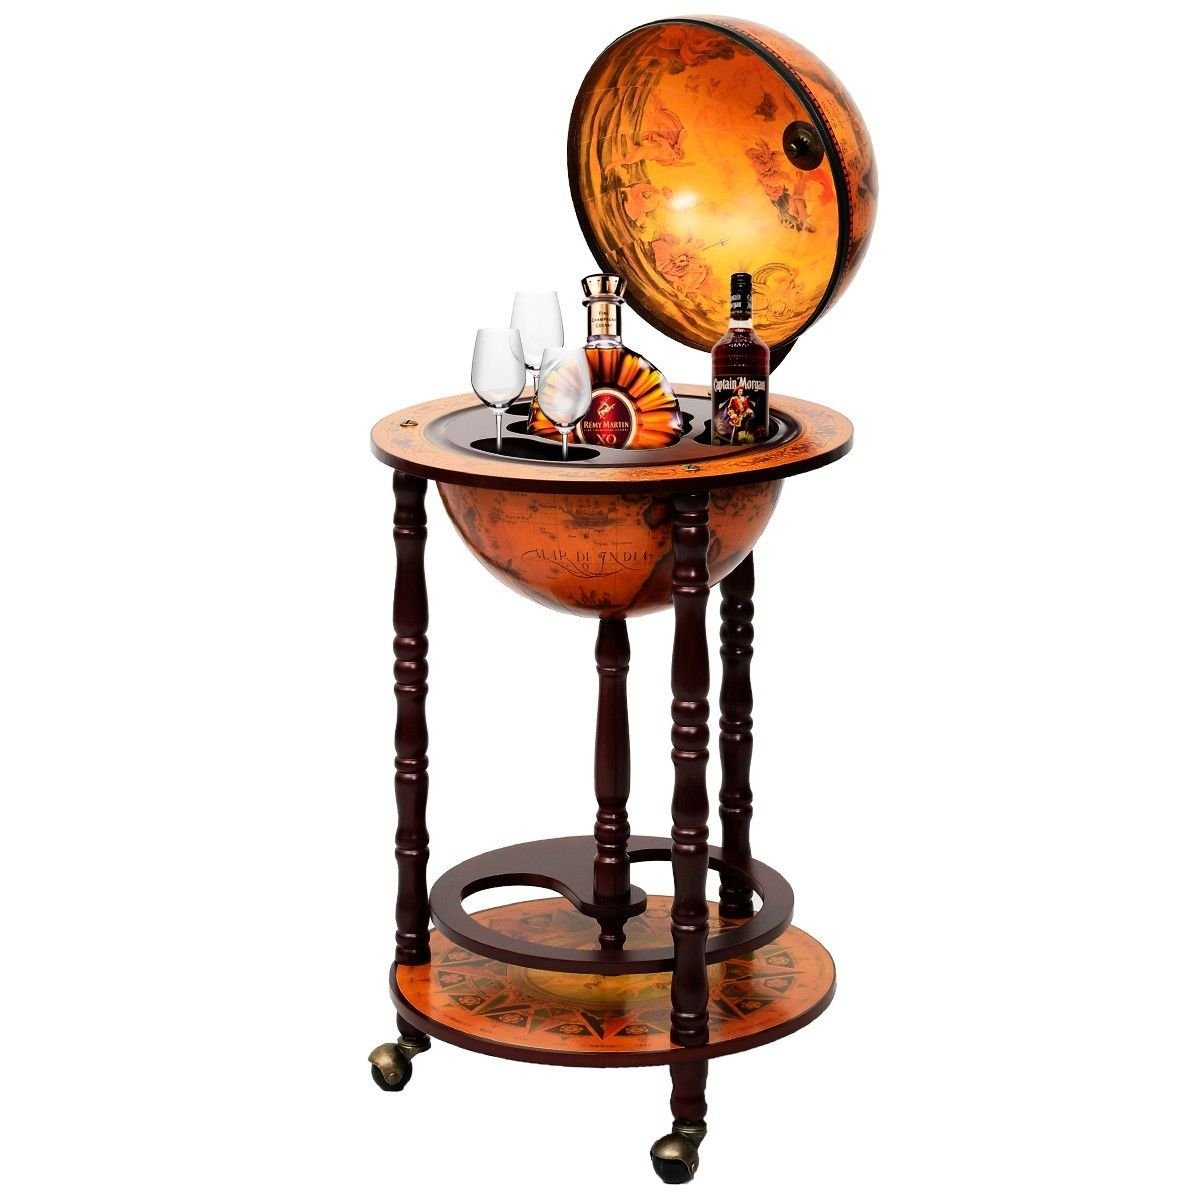 Brand New 36 Inches 18lbs 16th Century Vintage Italian Wood Globe Earth Old World Map Stand Bottle Shelf Rack Bar with Wheels for Liquor Wine Whiskey Beverages by Generic